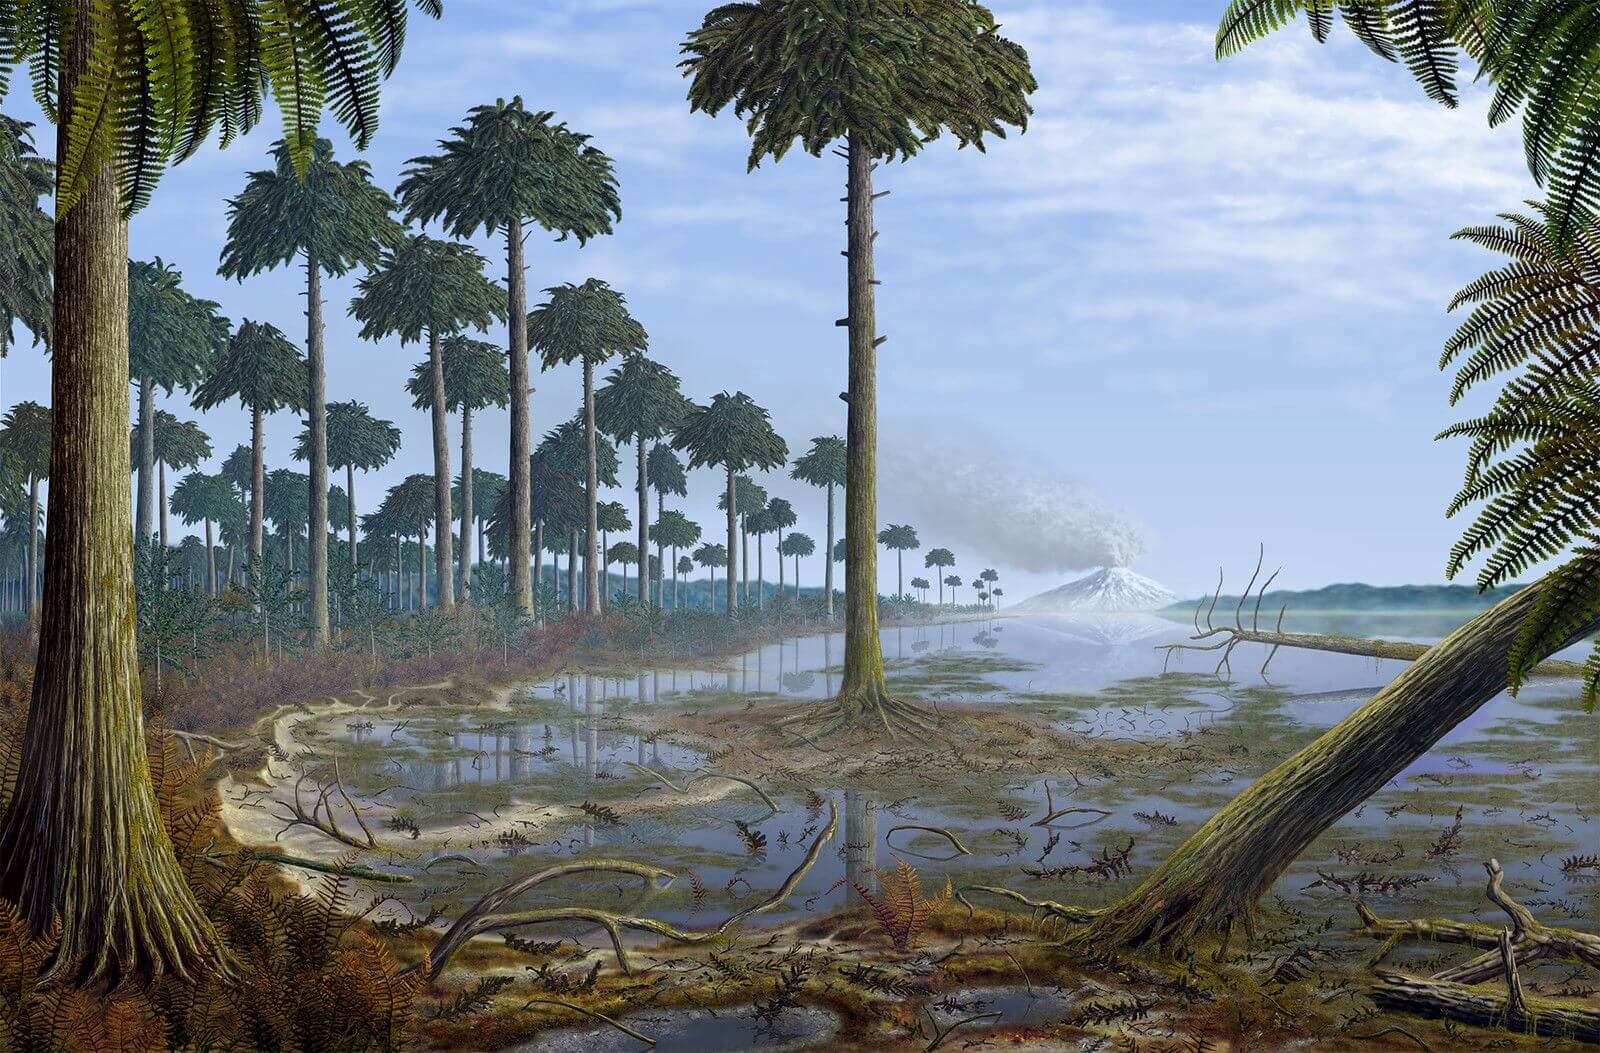 In the United States discovered the remains of the very first trees on Earth